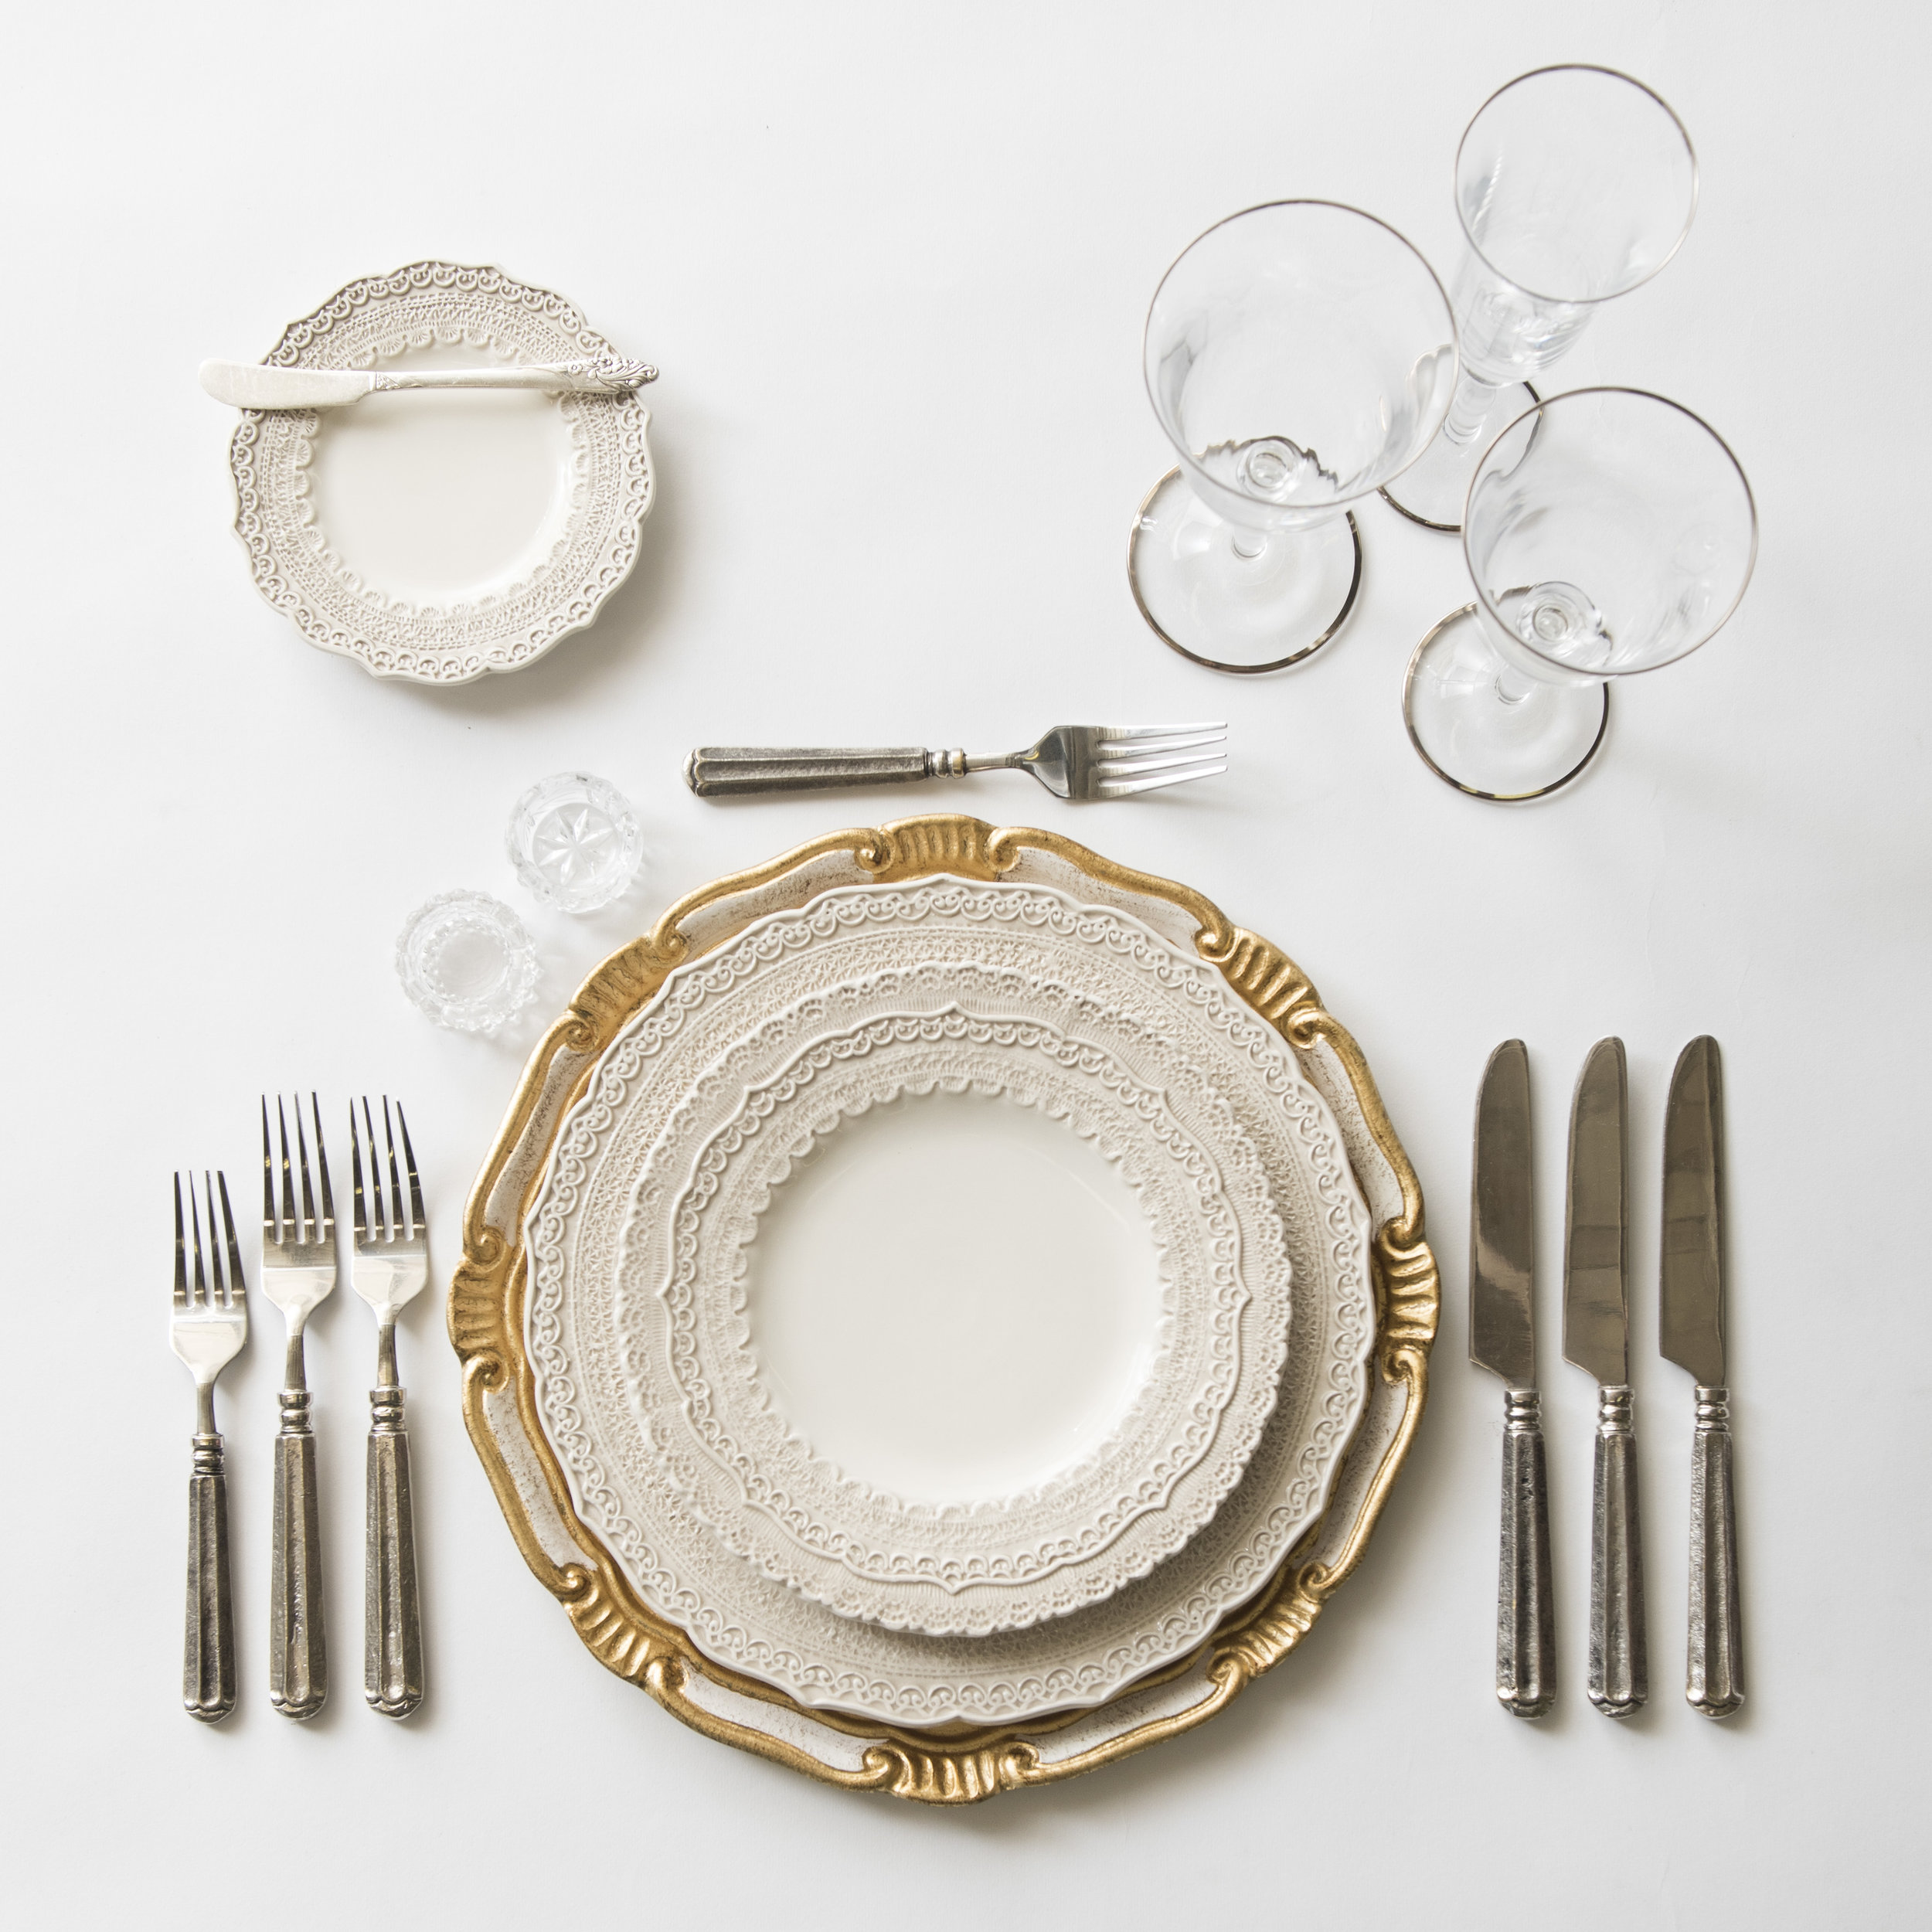 RENT: Florentine Chargers in White/Gold + Lace Dinnerware in White + Tuscan Flatware in Pewter + Chloe Platinum Rimmed Stemware + Antique Crystal Salt Cellars   SHOP: Florentine Chargers in White/Gold + Chloe Platinum Rimmed Stemware